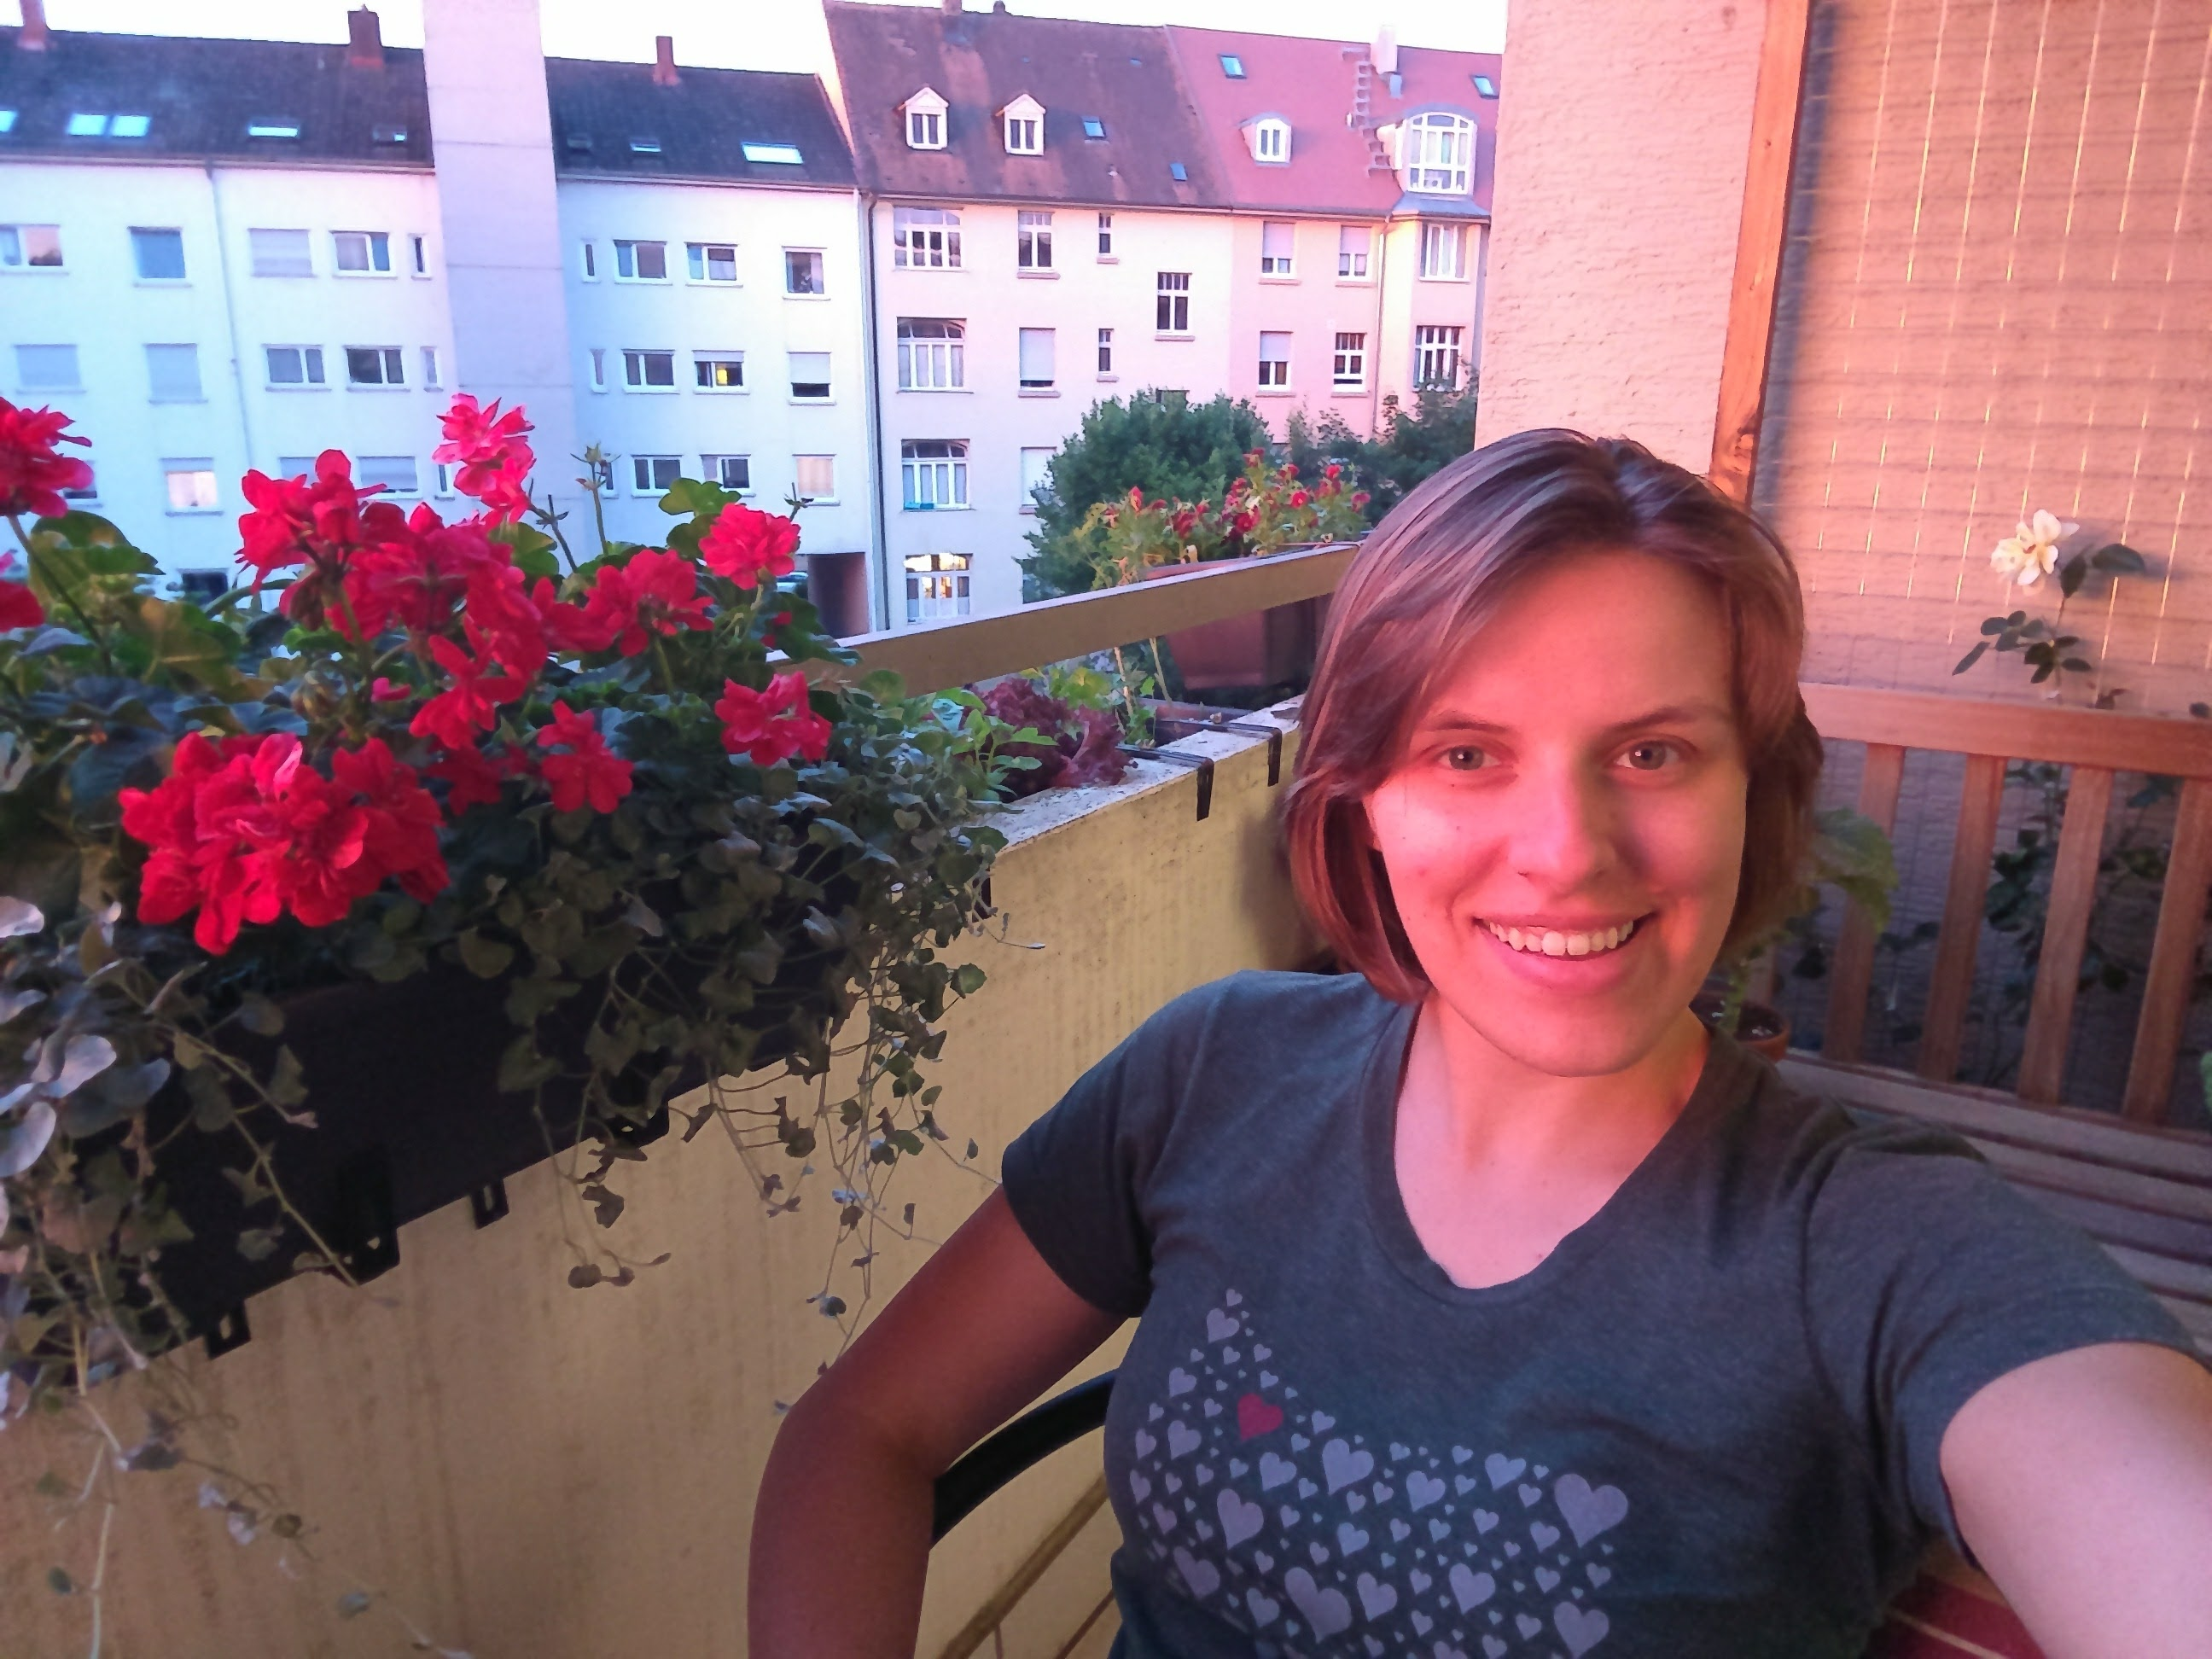 The author on her flower balcony